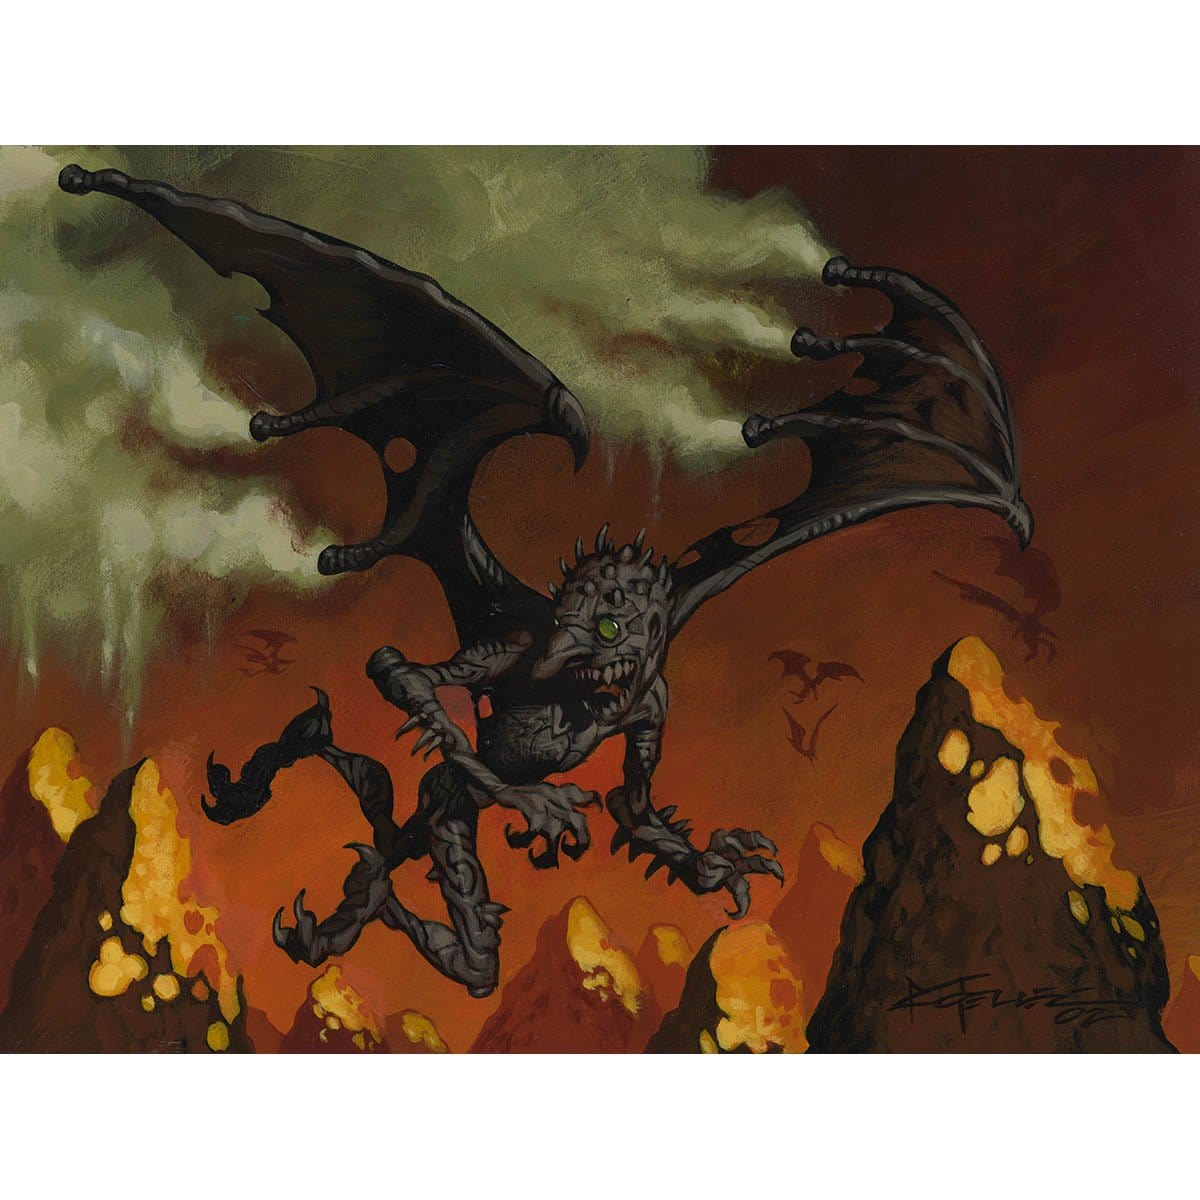 Chimney Imp Print - Print - Original Magic Art - Accessories for Magic the Gathering and other card games